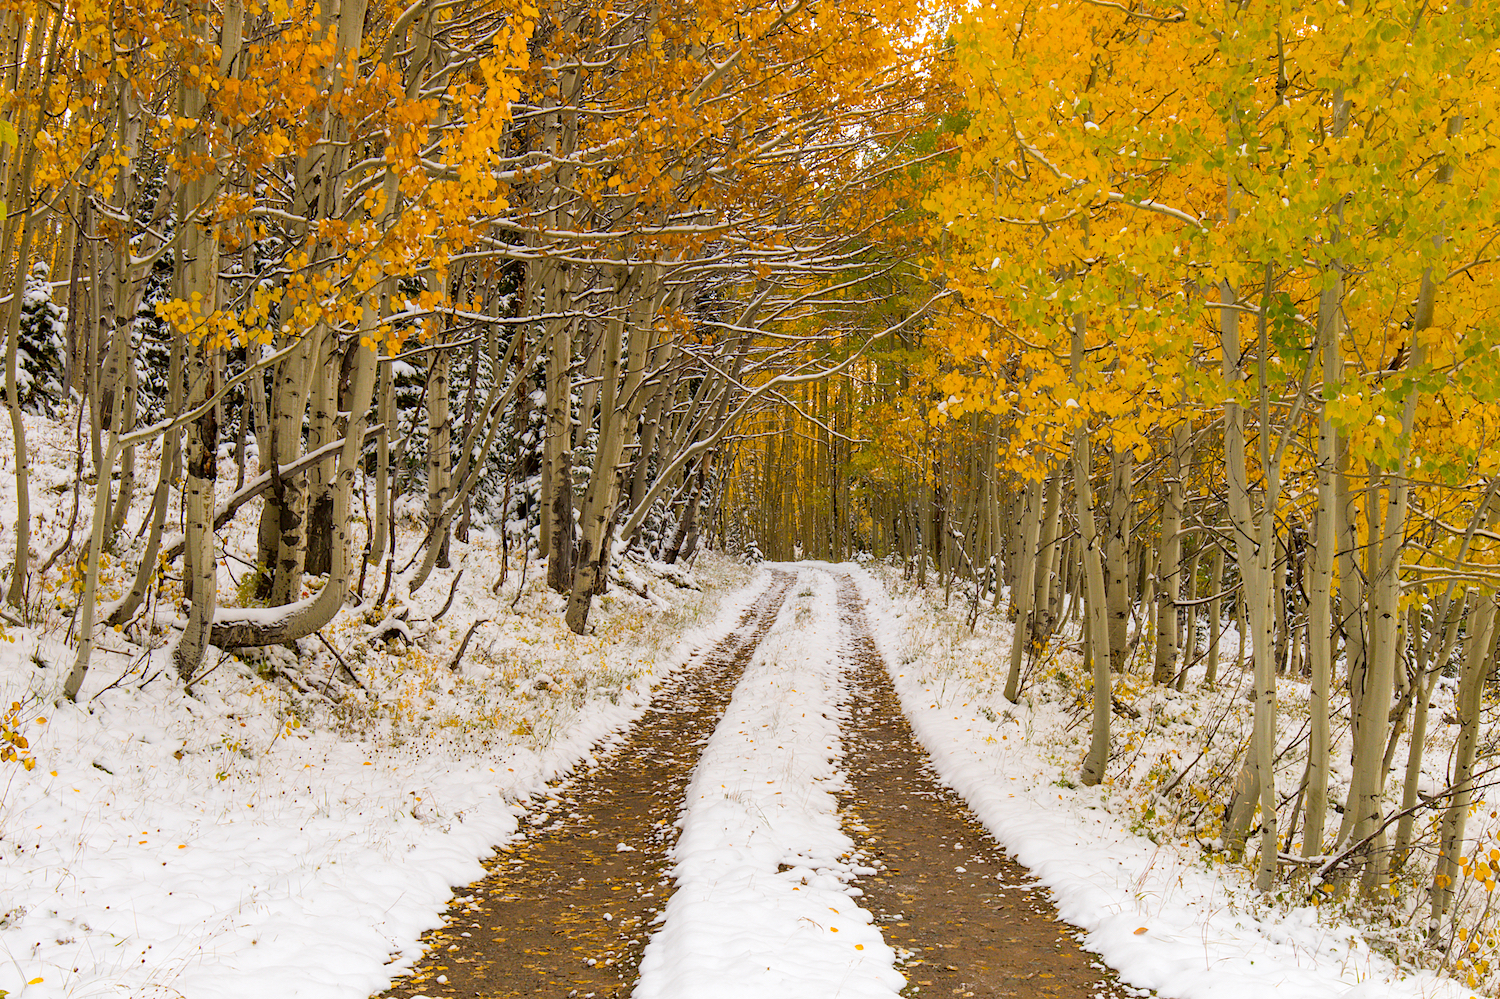 Snowy Fall Day, Image # 0852